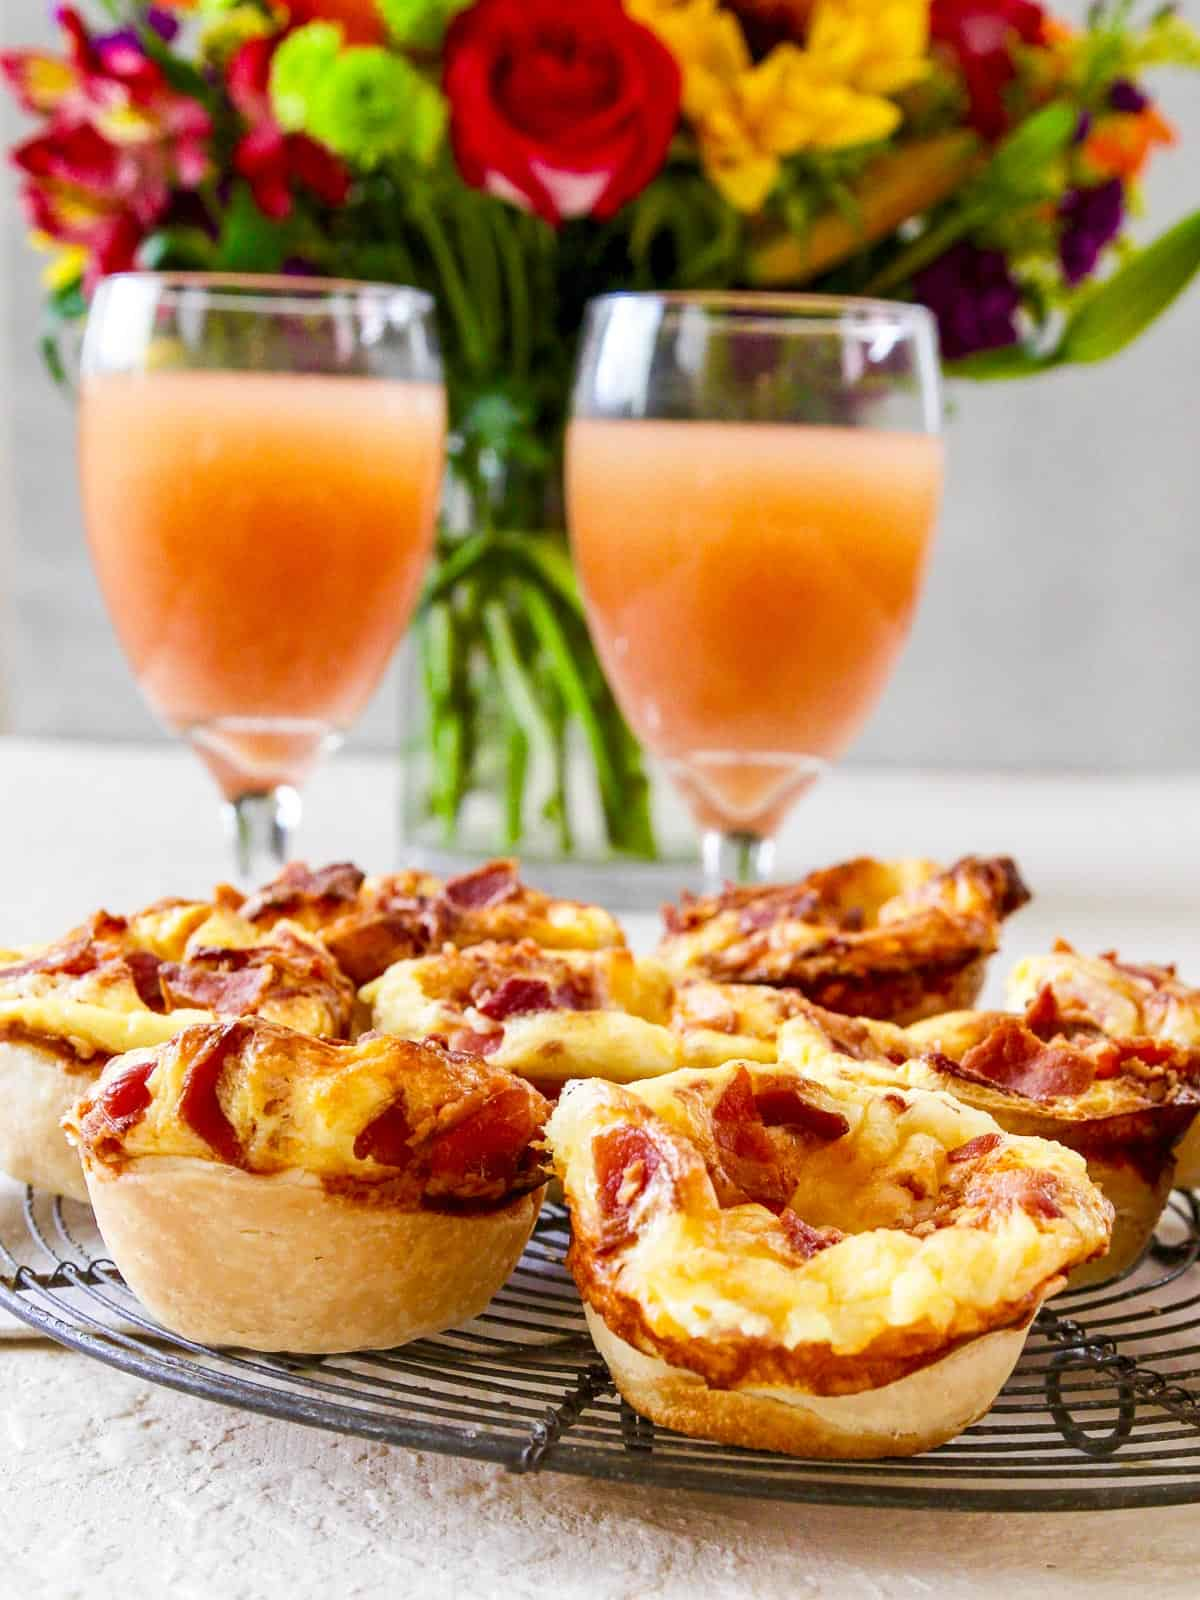 Two glasses of grapefruit juice with mini quiches and flowers in the background at brunch.